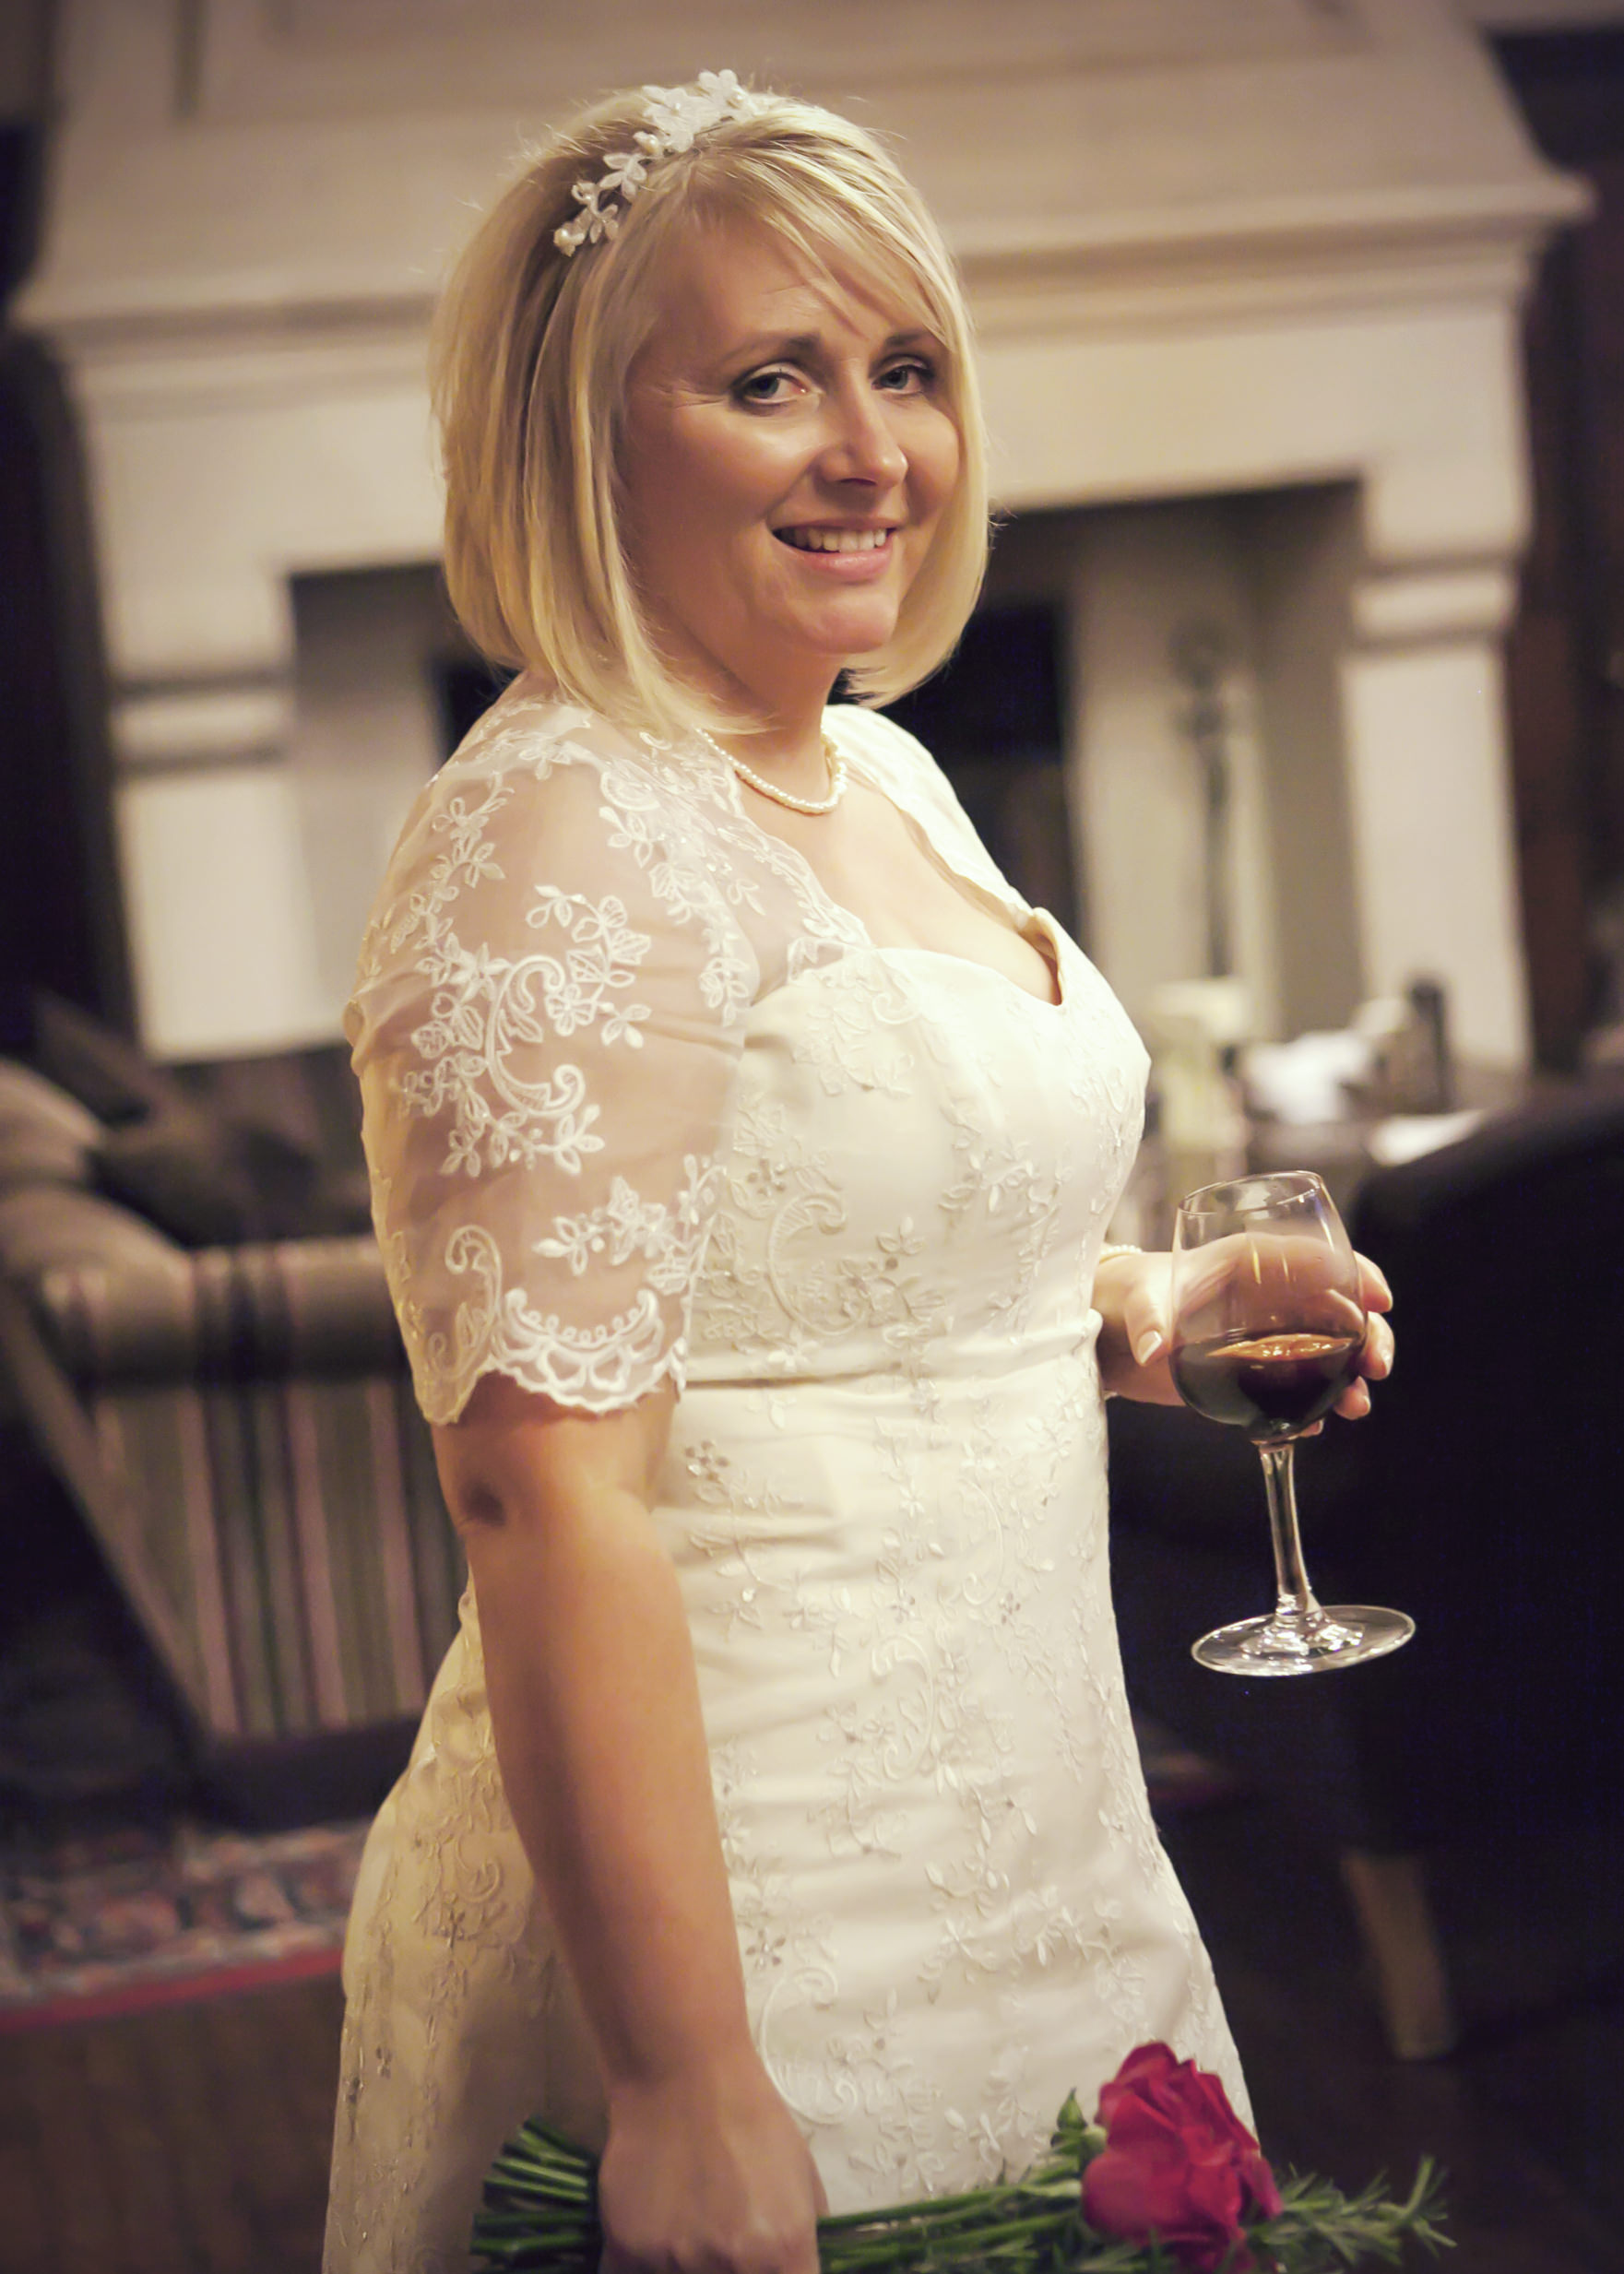 Bespoke lace wedding dress